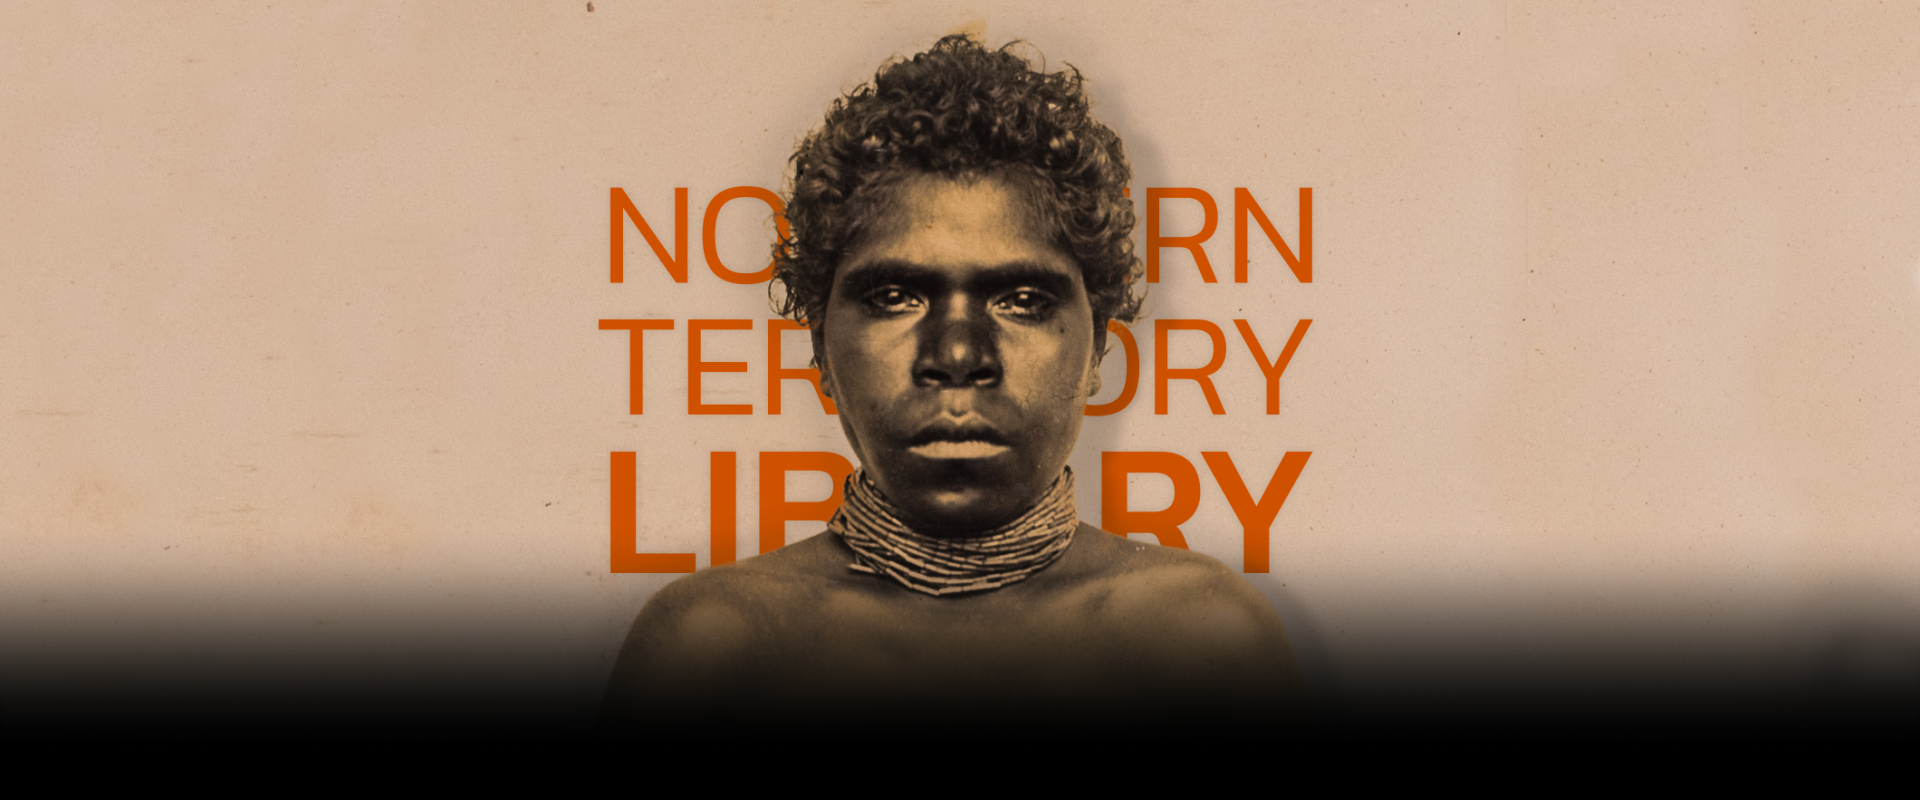 Portrait of unknown Larrakia woman Northern Territory Library in text in background